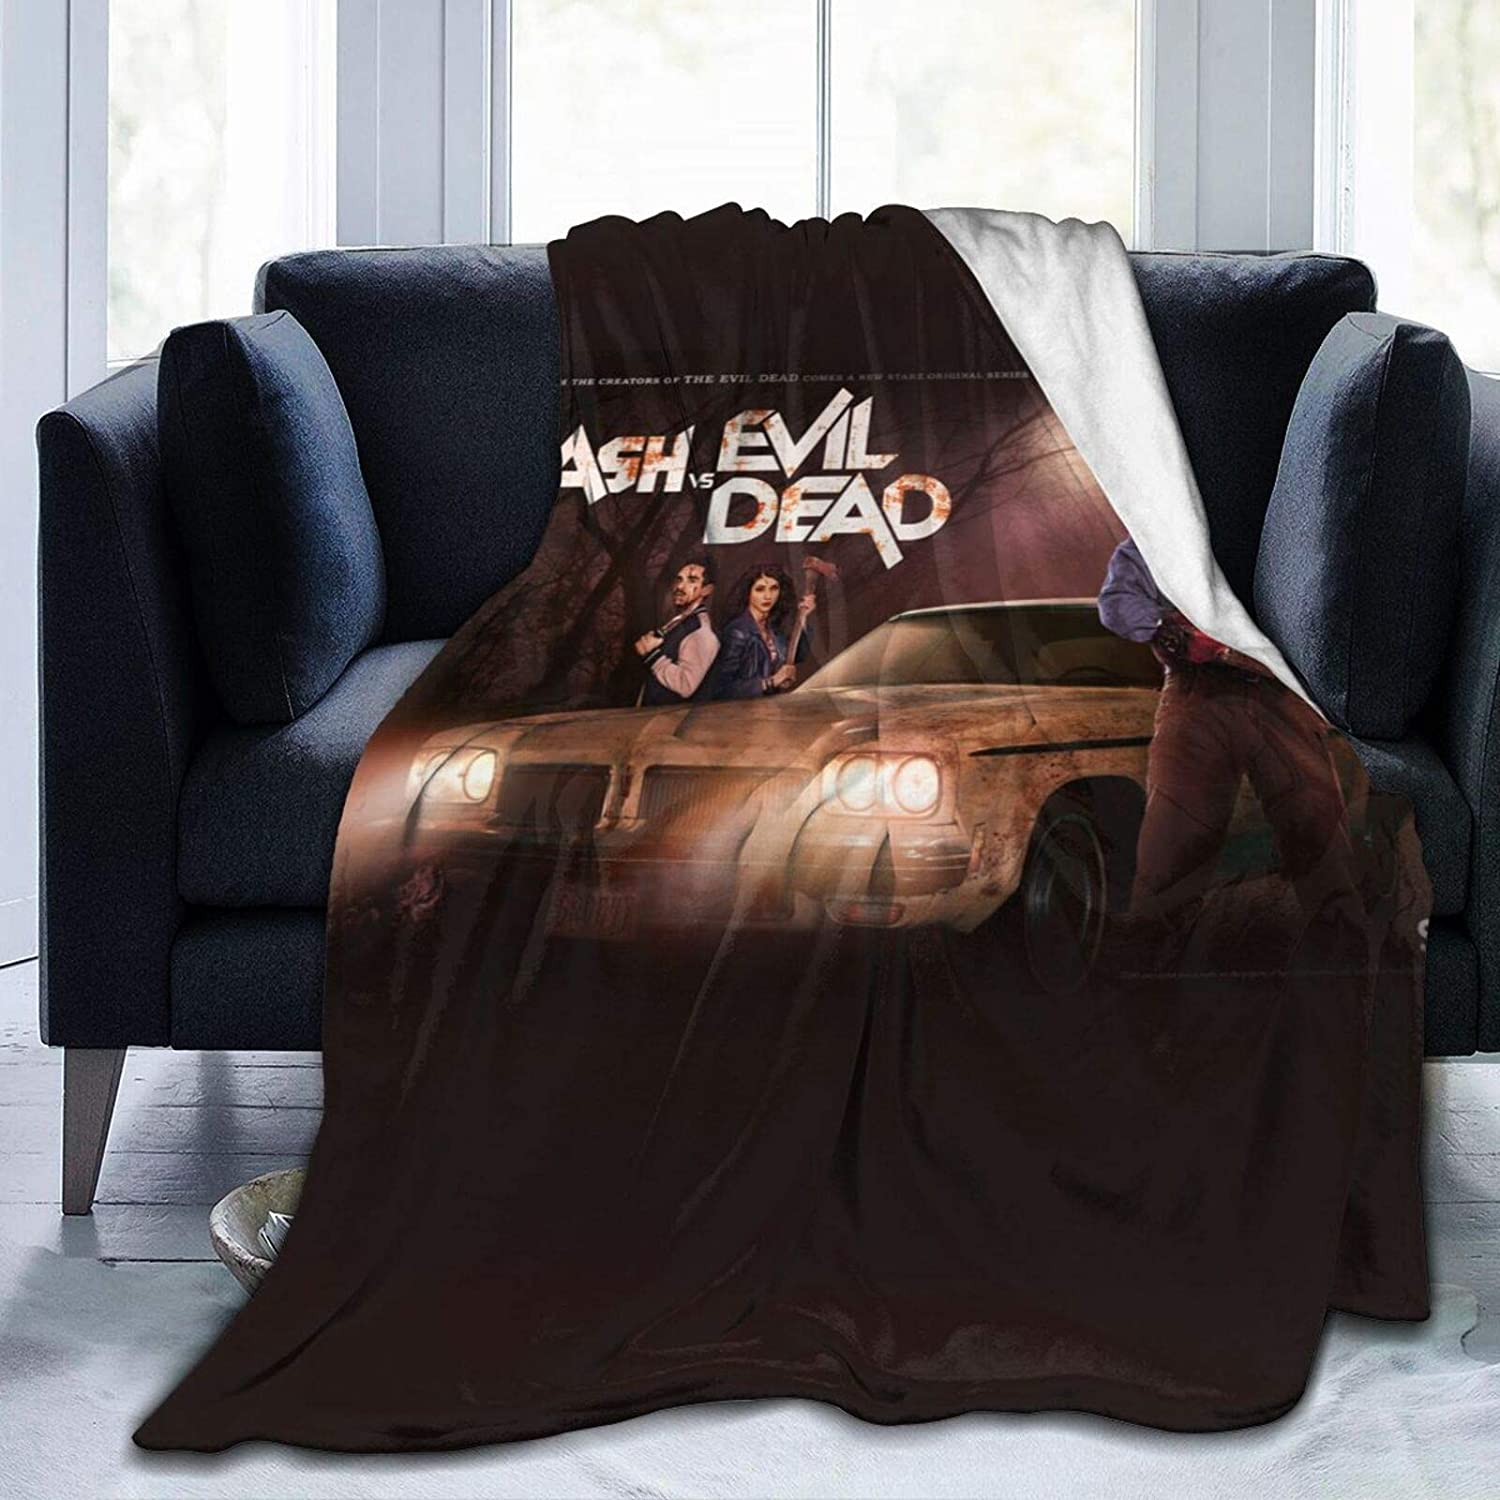 KRR Blanket Throw Evil Dead Soft Blanket Plush Fluffy Durable Home Decor Perfect for Couch Sofa Beds Living Room(60